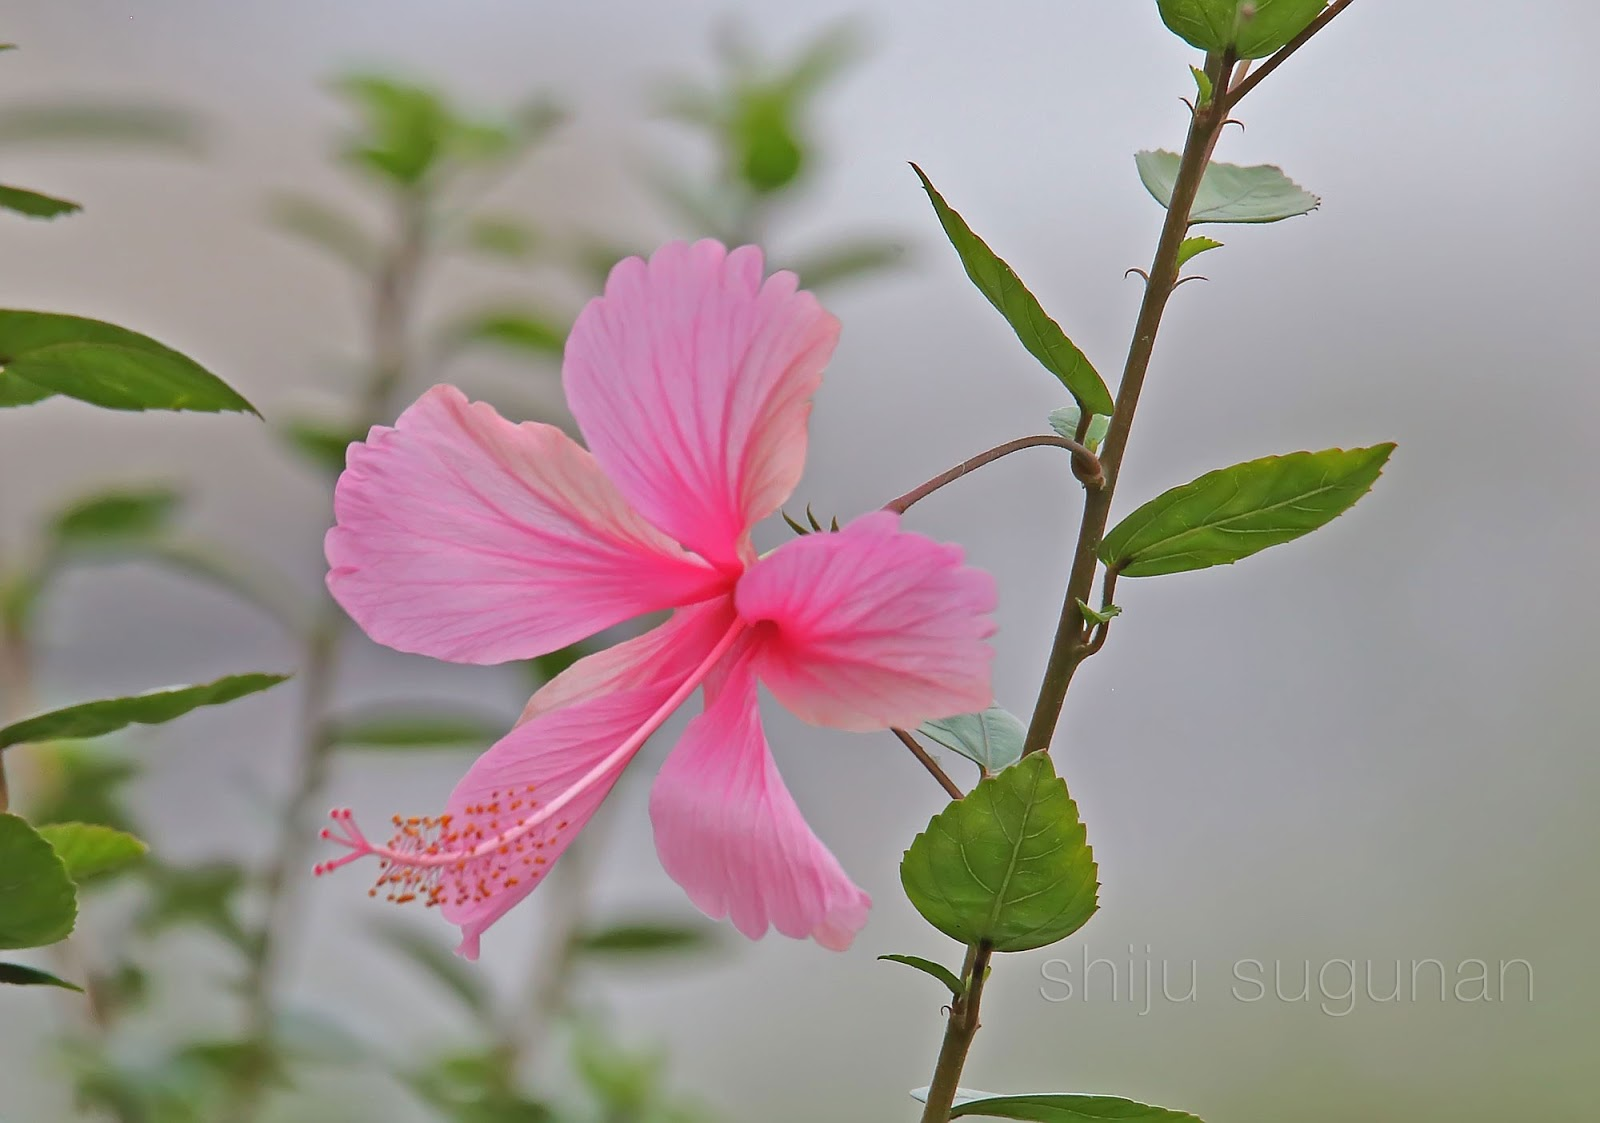 Hibiscus Bloom Photo by @shijuvenate